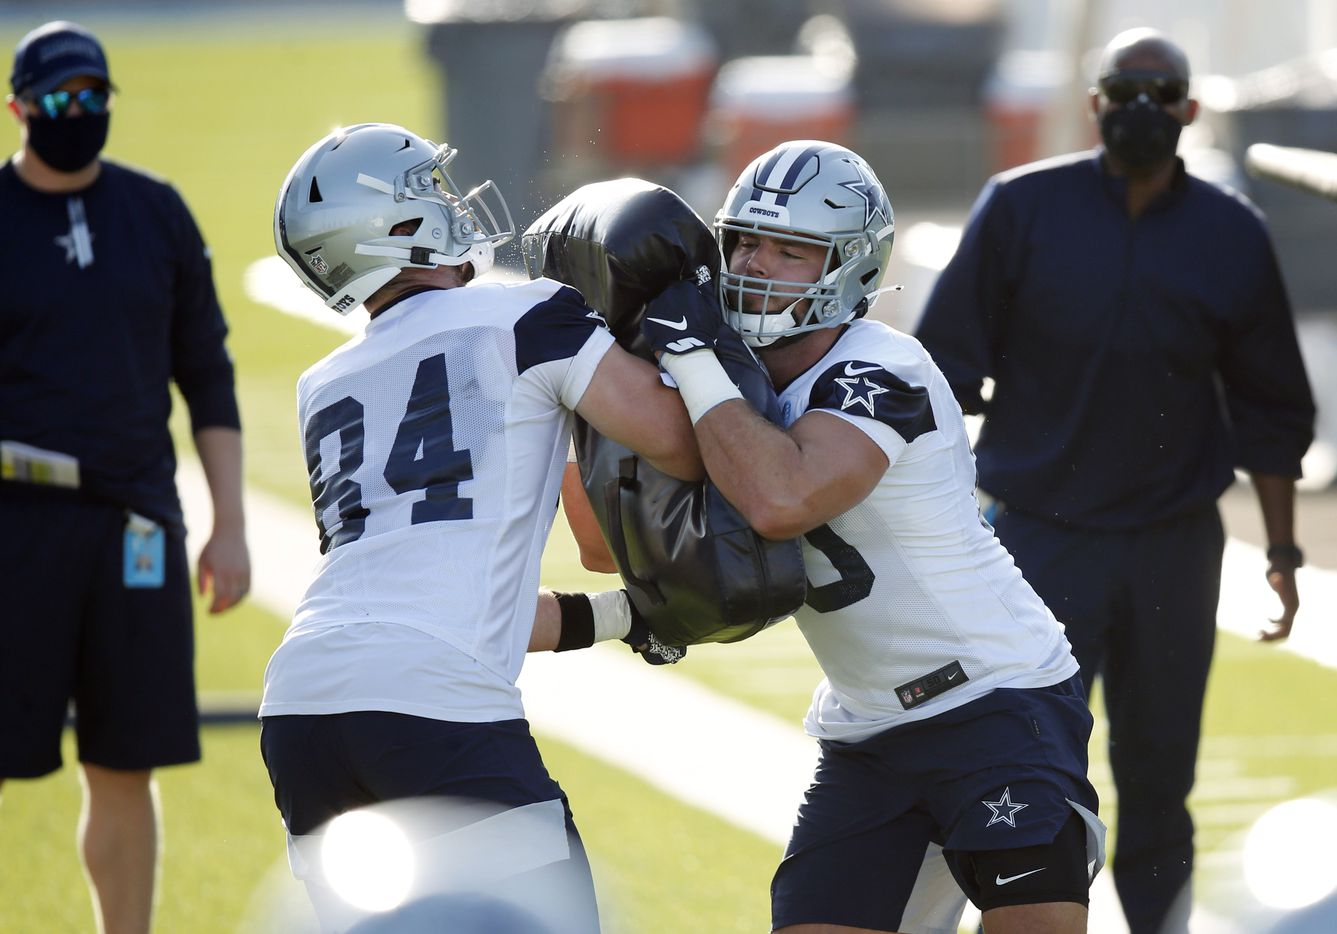 Dallas Cowboys tight end Blake Bell (80) attempts to run through Dallas Cowboys tight end Sean McKeon (84) on a drill during the first day of training camp at Dallas Cowboys headquarters at The Star in Frisco, Texas on Friday, August 14, 2020. (Vernon Bryant/The Dallas Morning News)